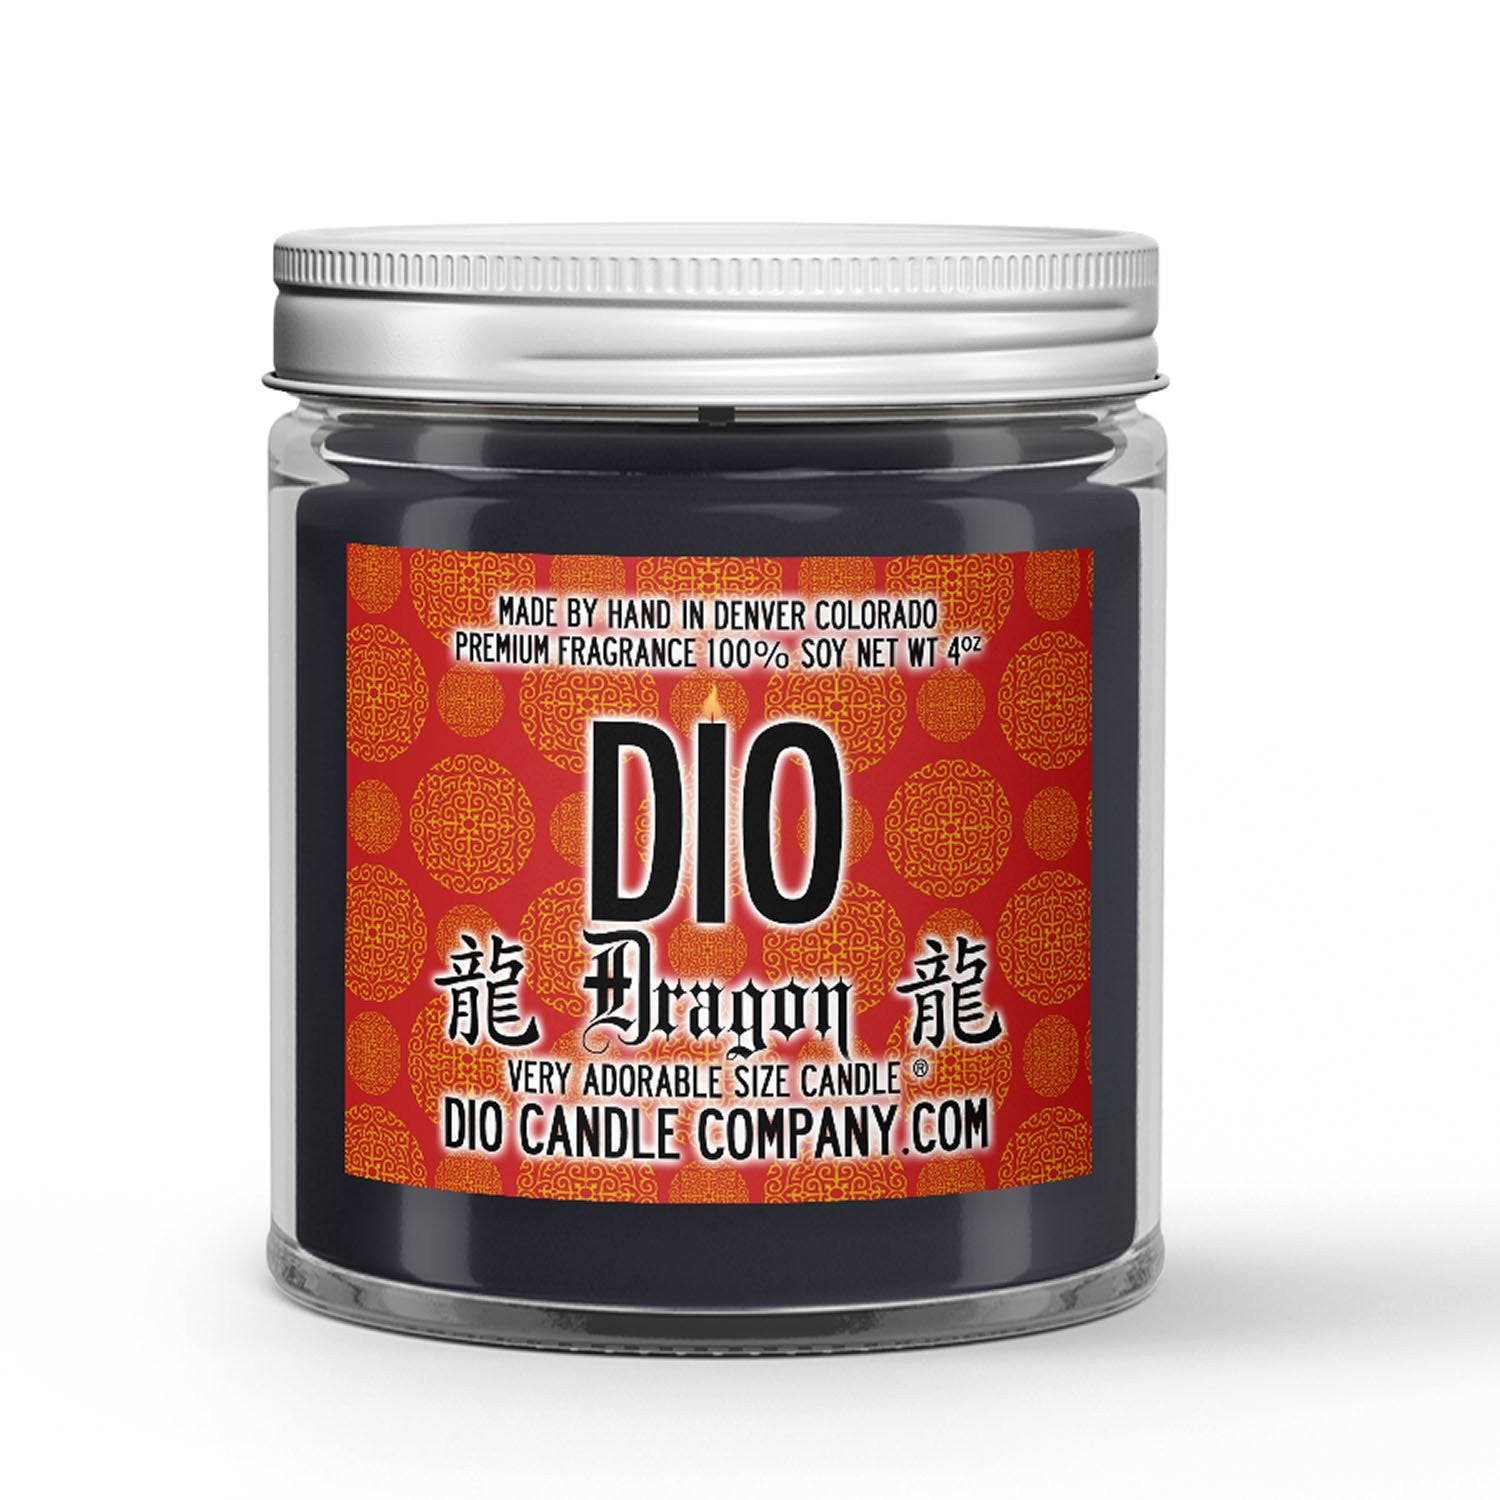 Dragon Candle - Rich Sandalwood - 4oz Very Adorable Size Candle® - Dio Candle Company